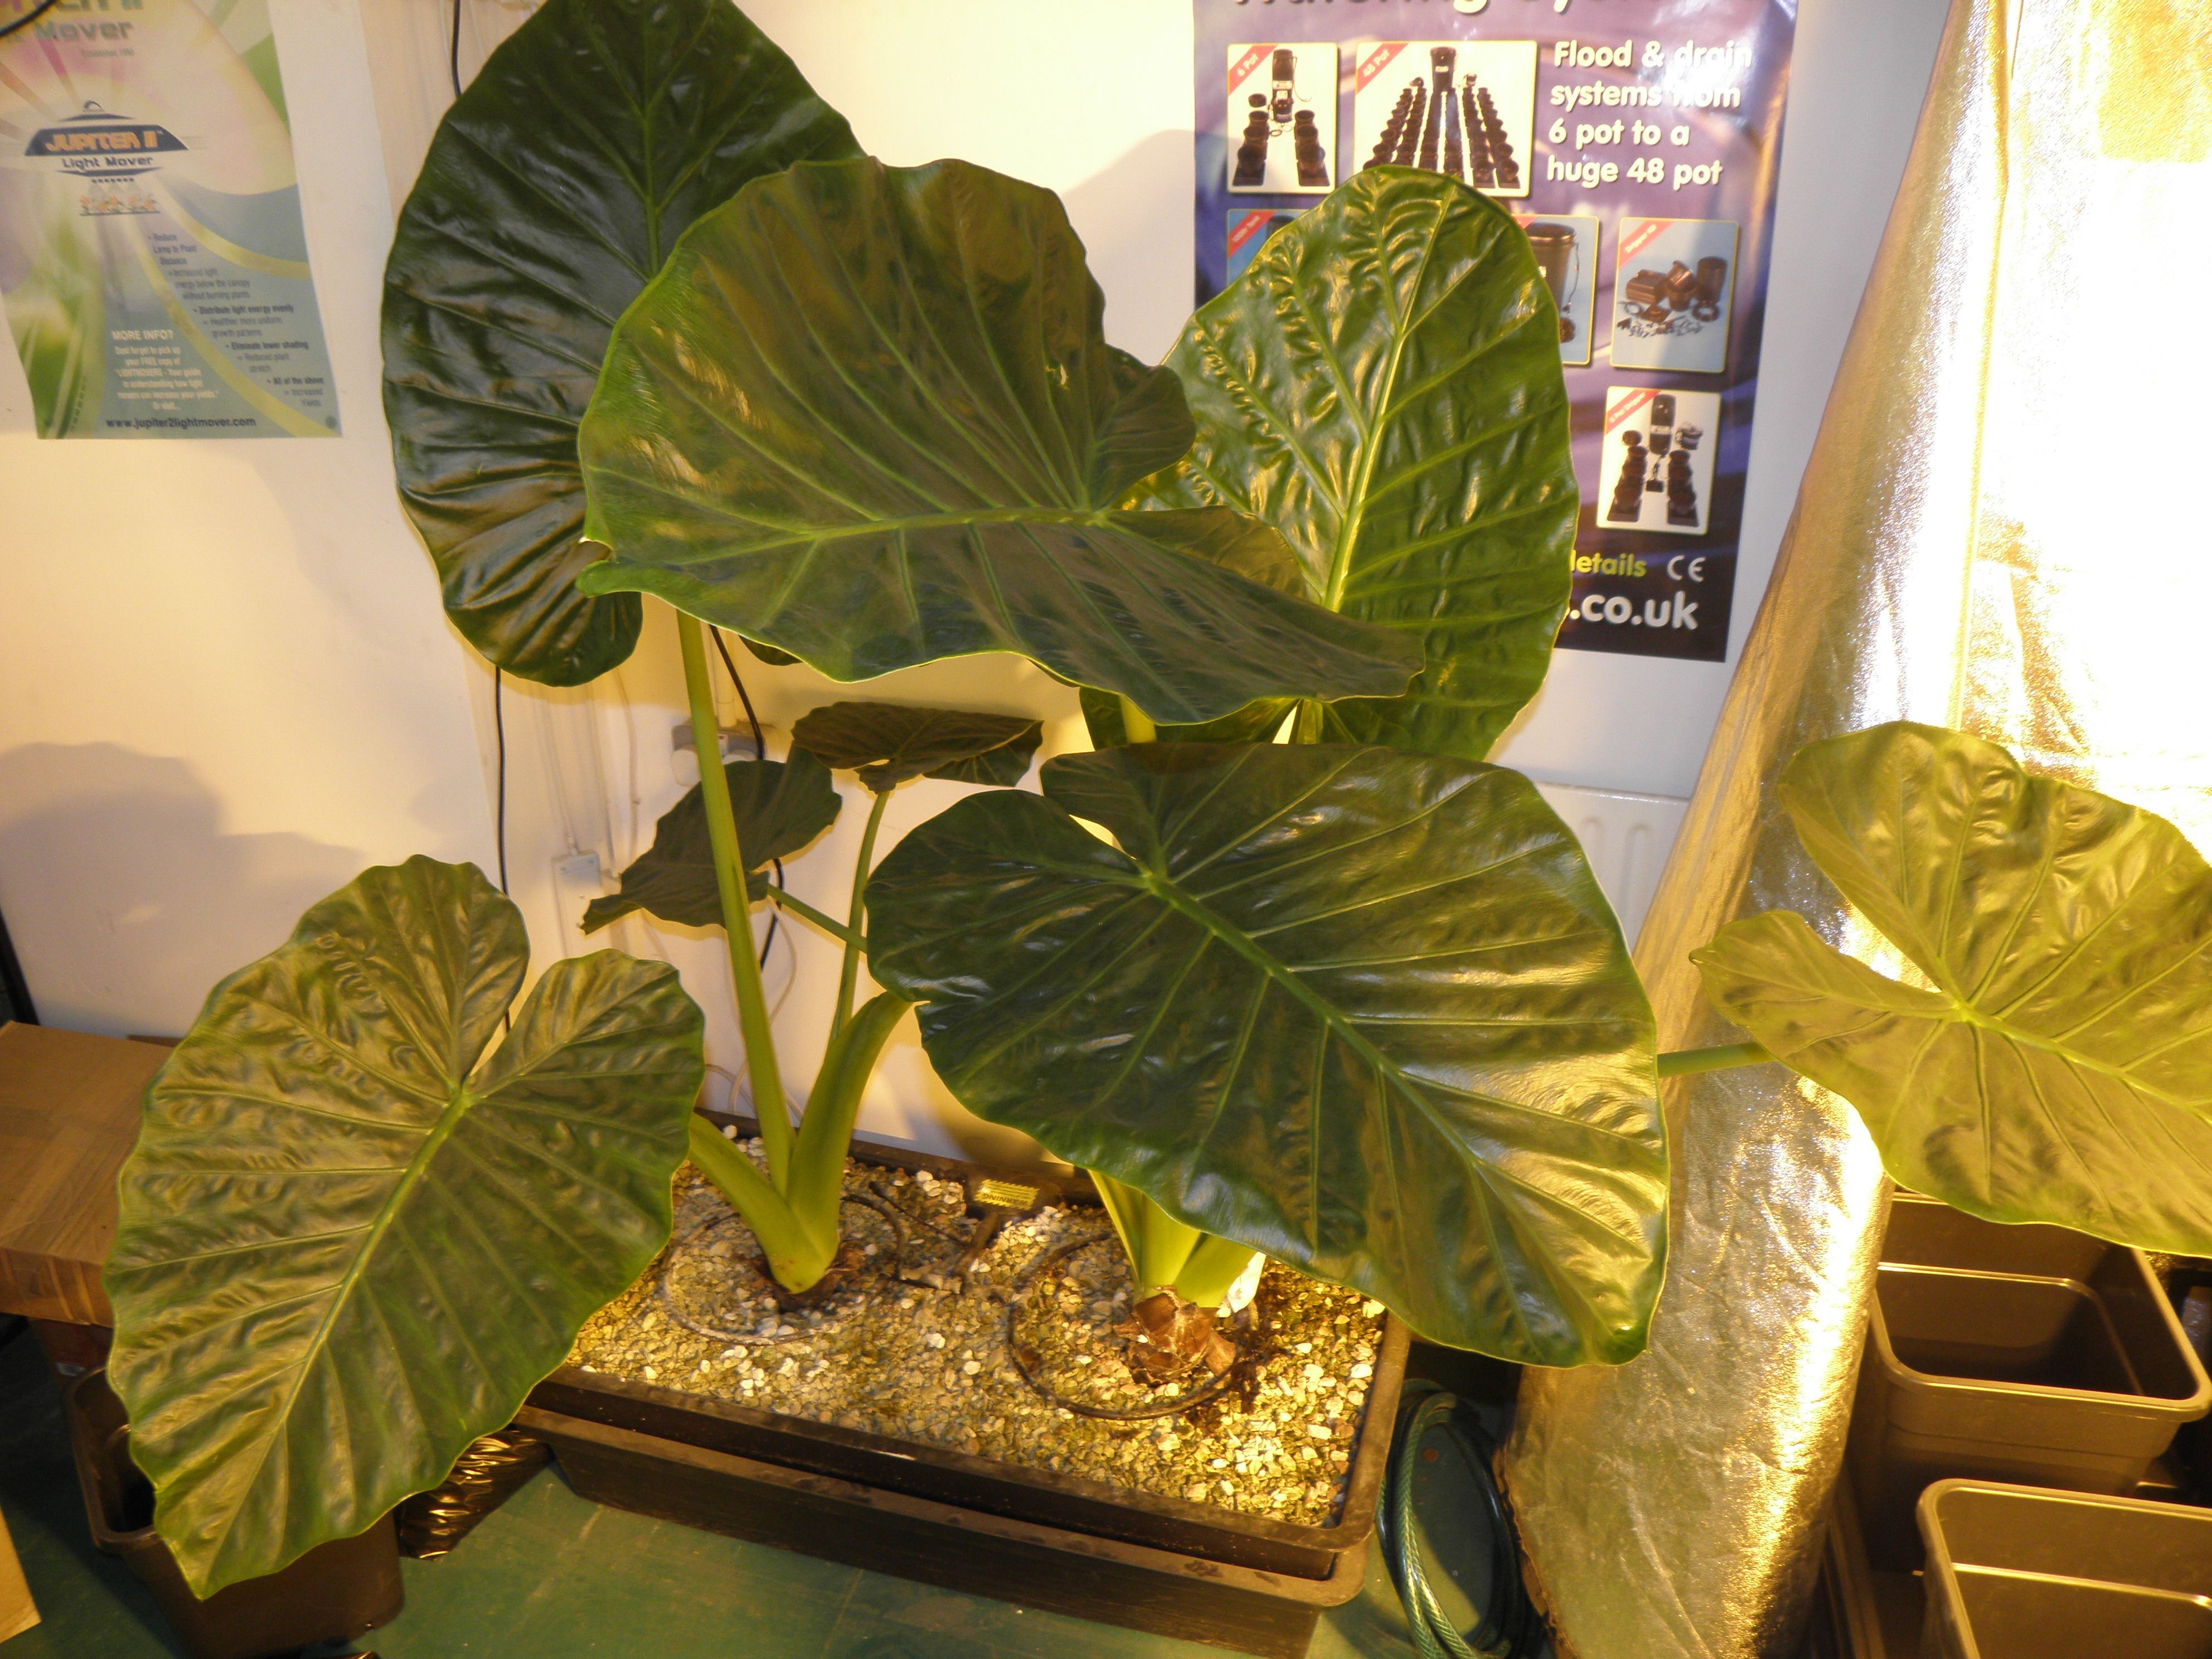 An Alocasia plant, usually grown in tropical environments like Asia ...